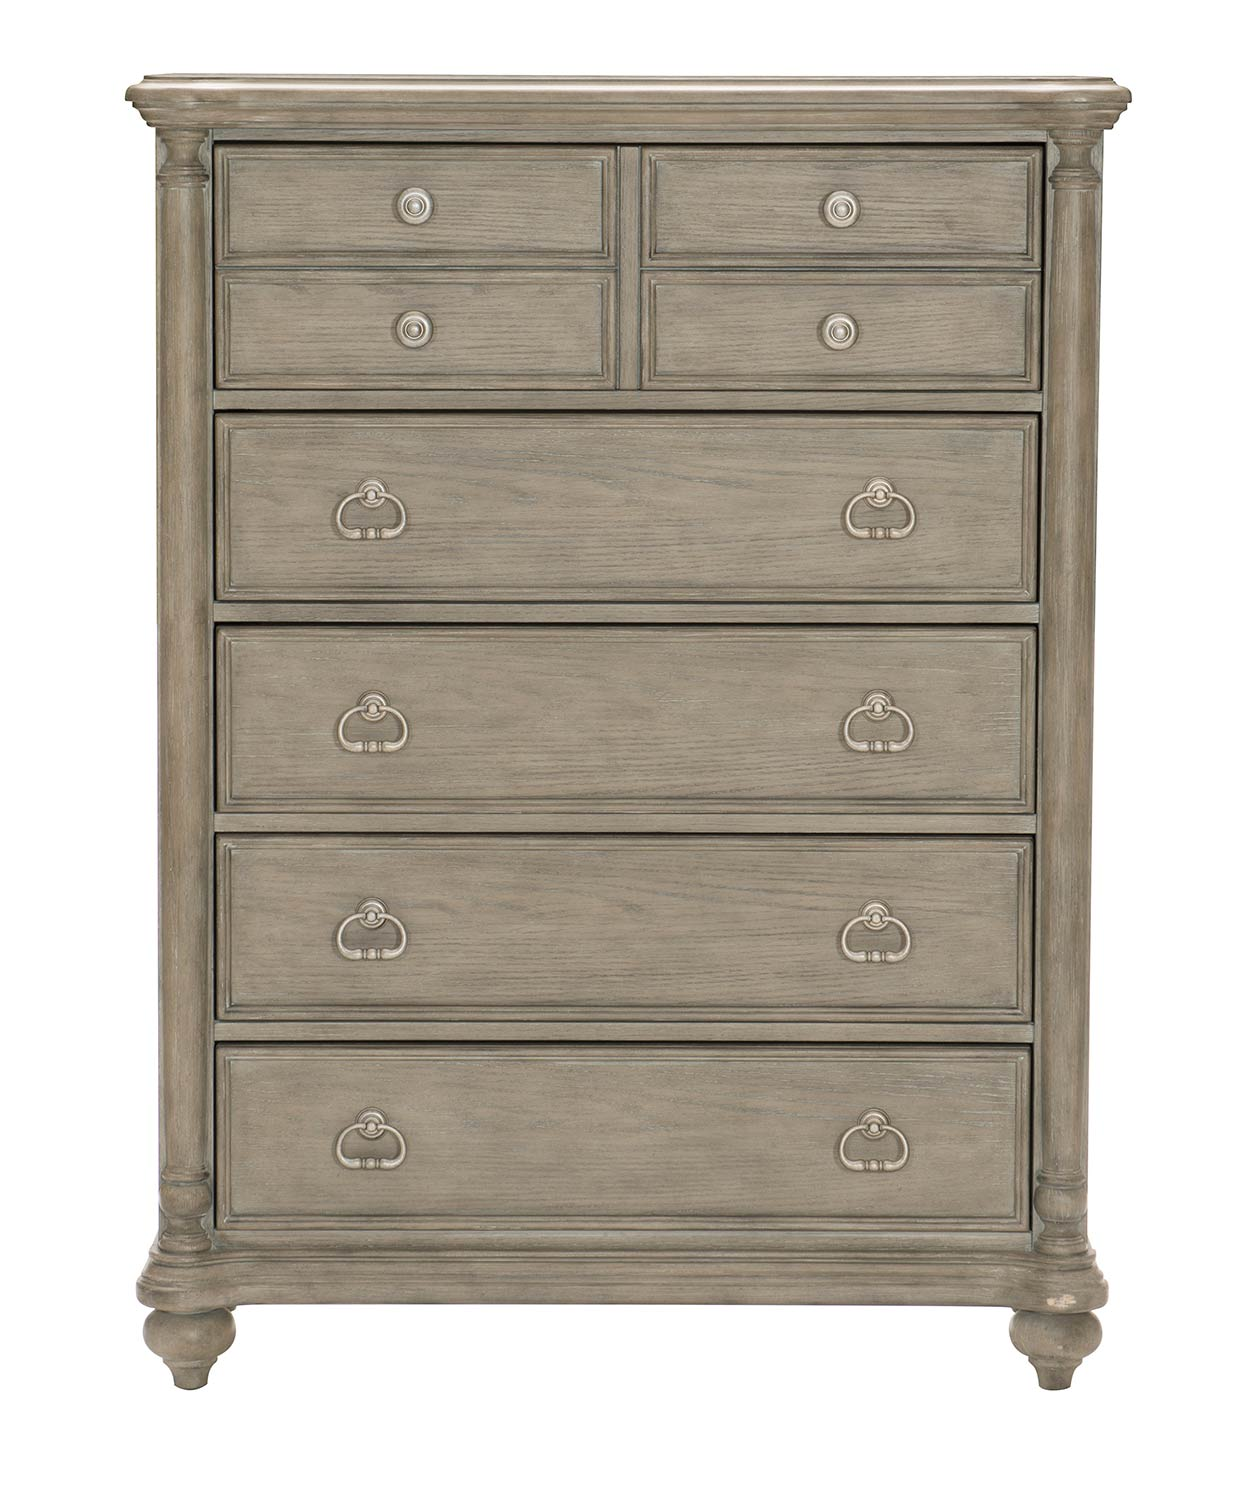 Homelegance Grayling Downs Chest - Driftwood Gray